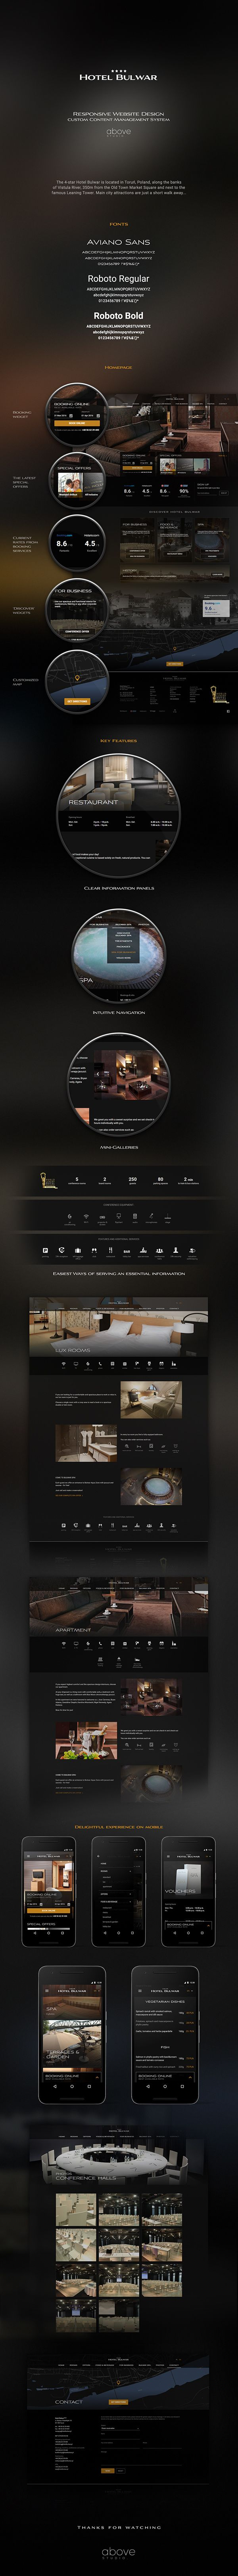 Hotel Bulwar**** - responsive website design. Check it out on my behance portfolio https://www.behance.net/gallery/36389323/Hotel-Bulwar-responsive-website-design